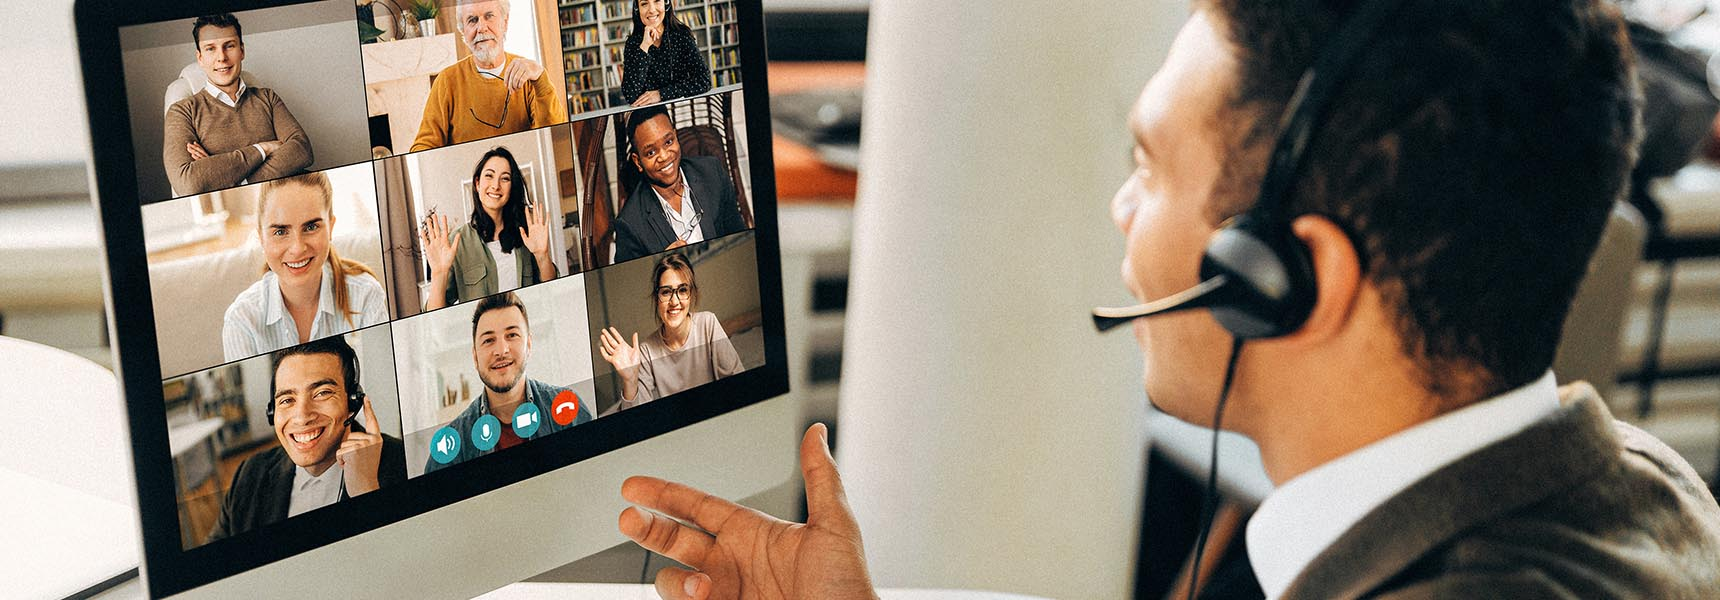 Photo of a man in an online meeting.